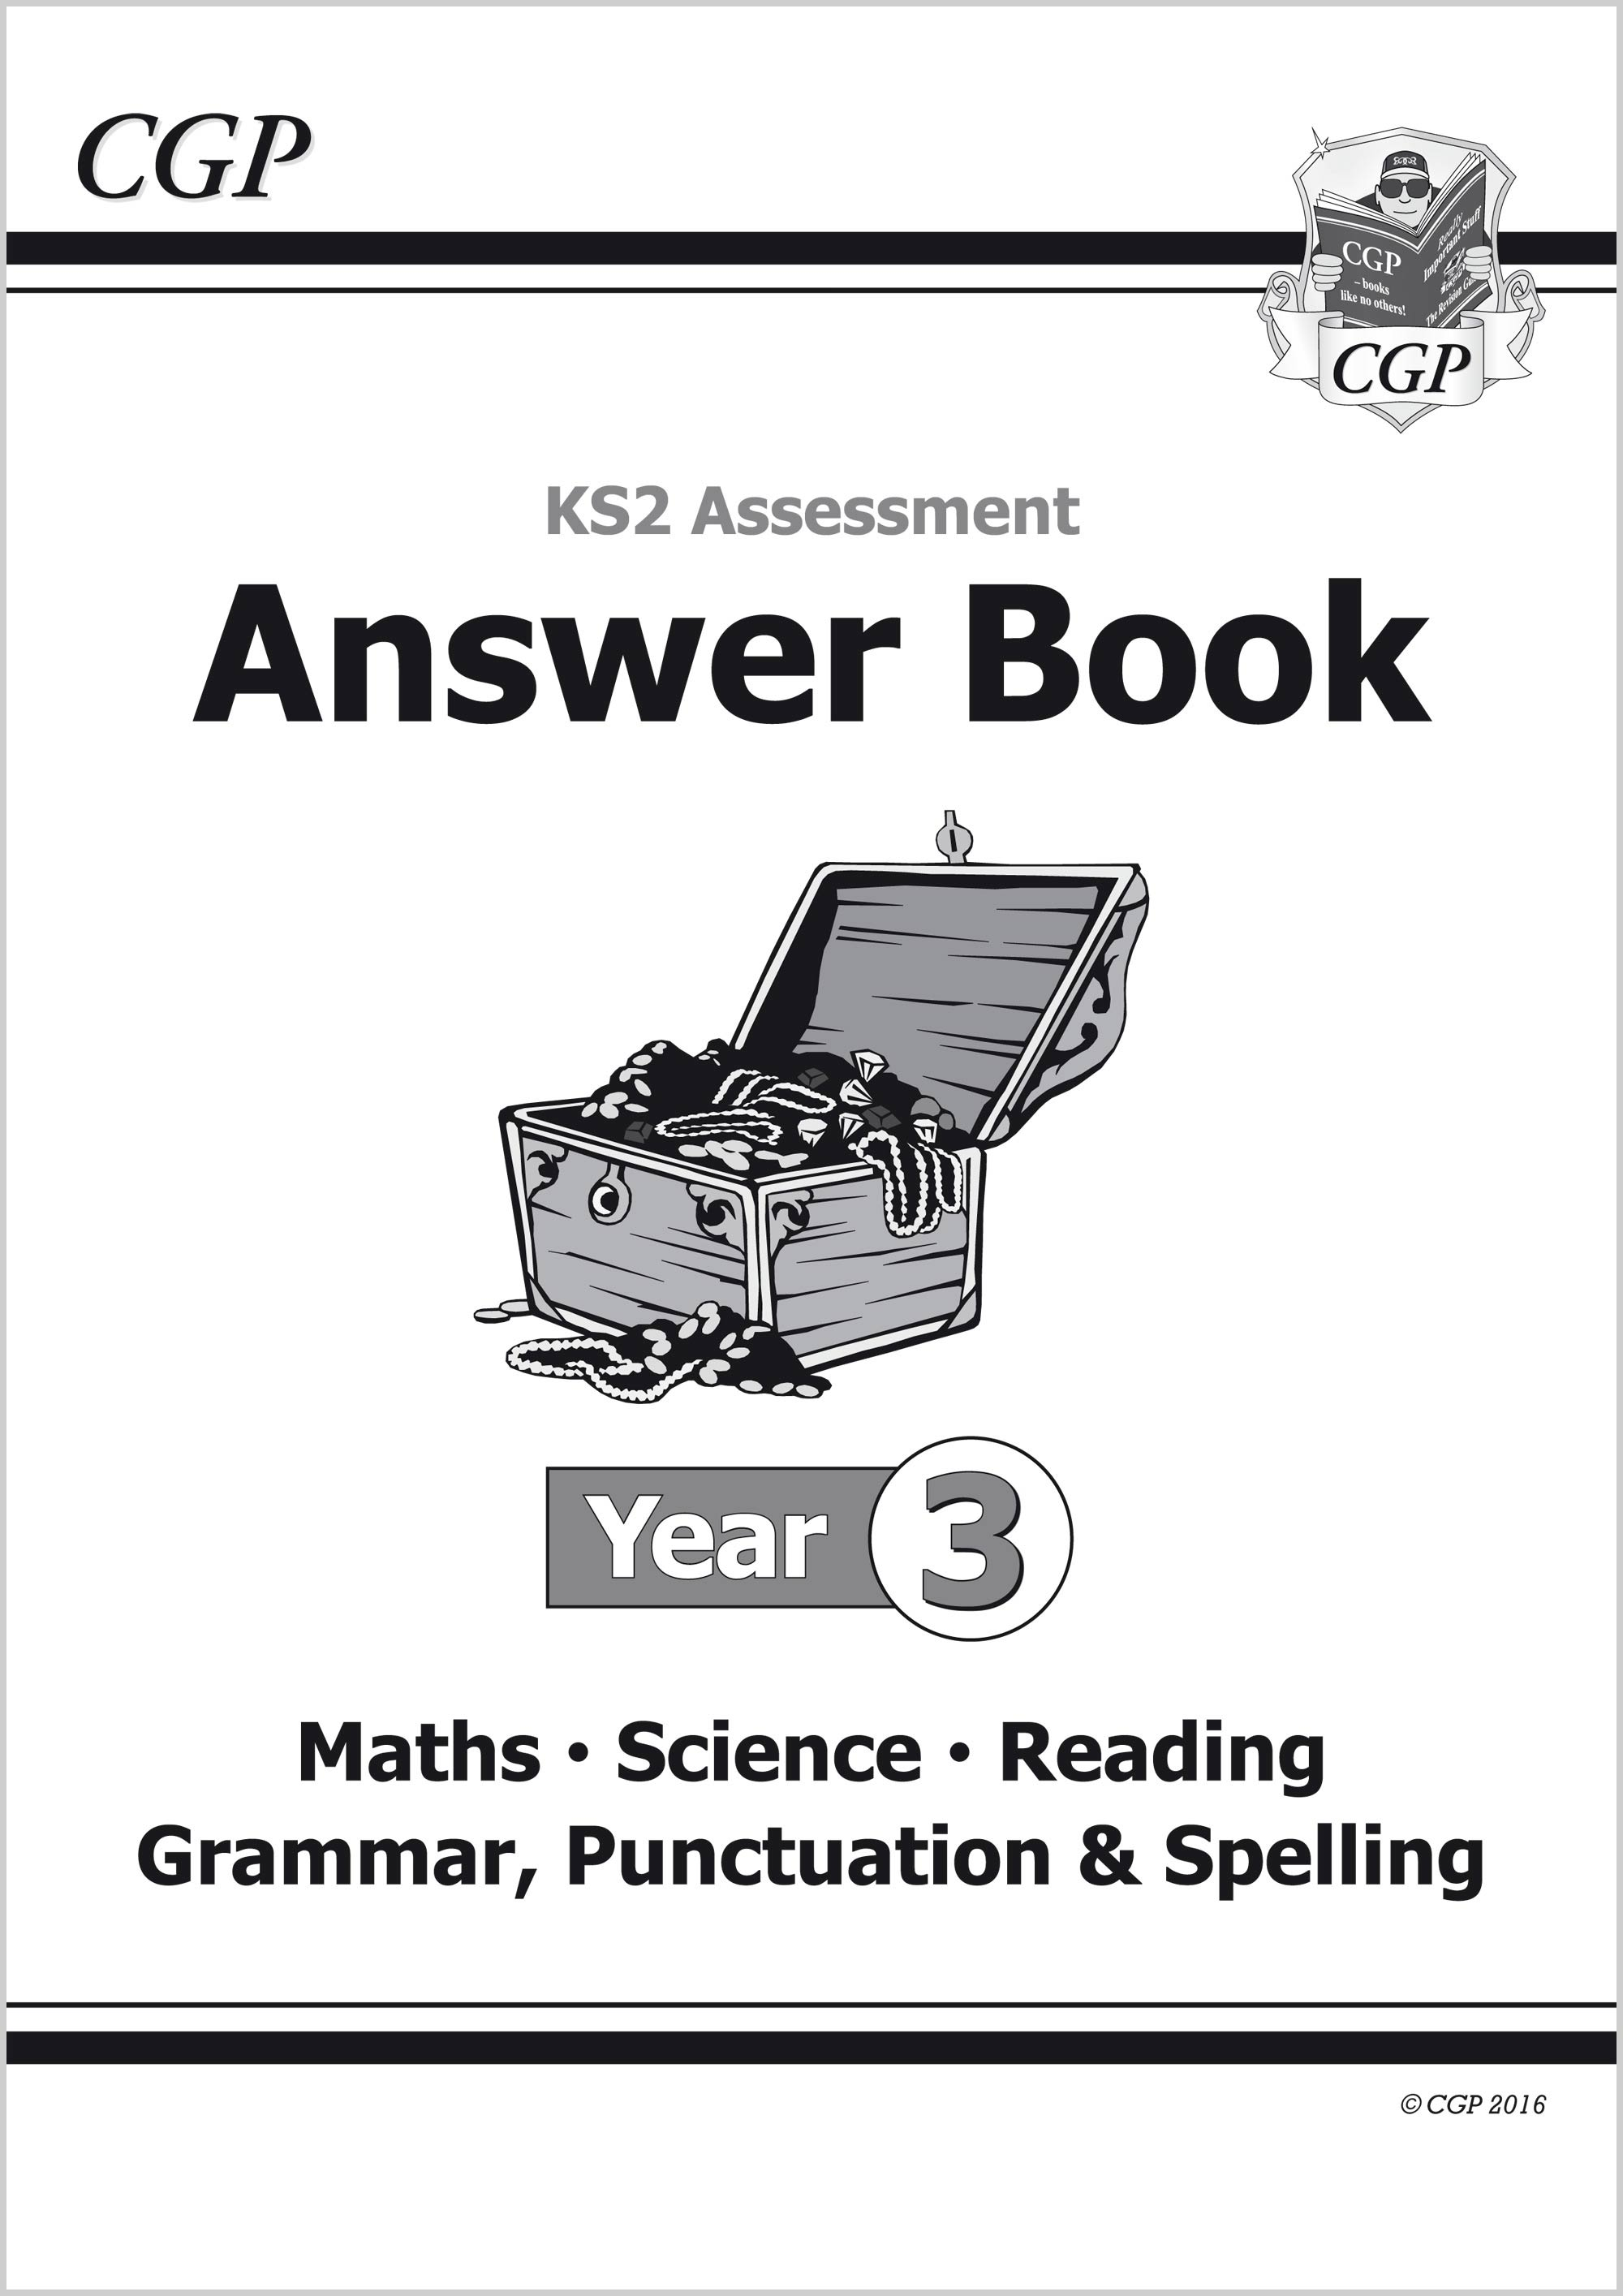 EMS3A21 - KS2 Assessment: Complete Answer Book - Year 3 Tests